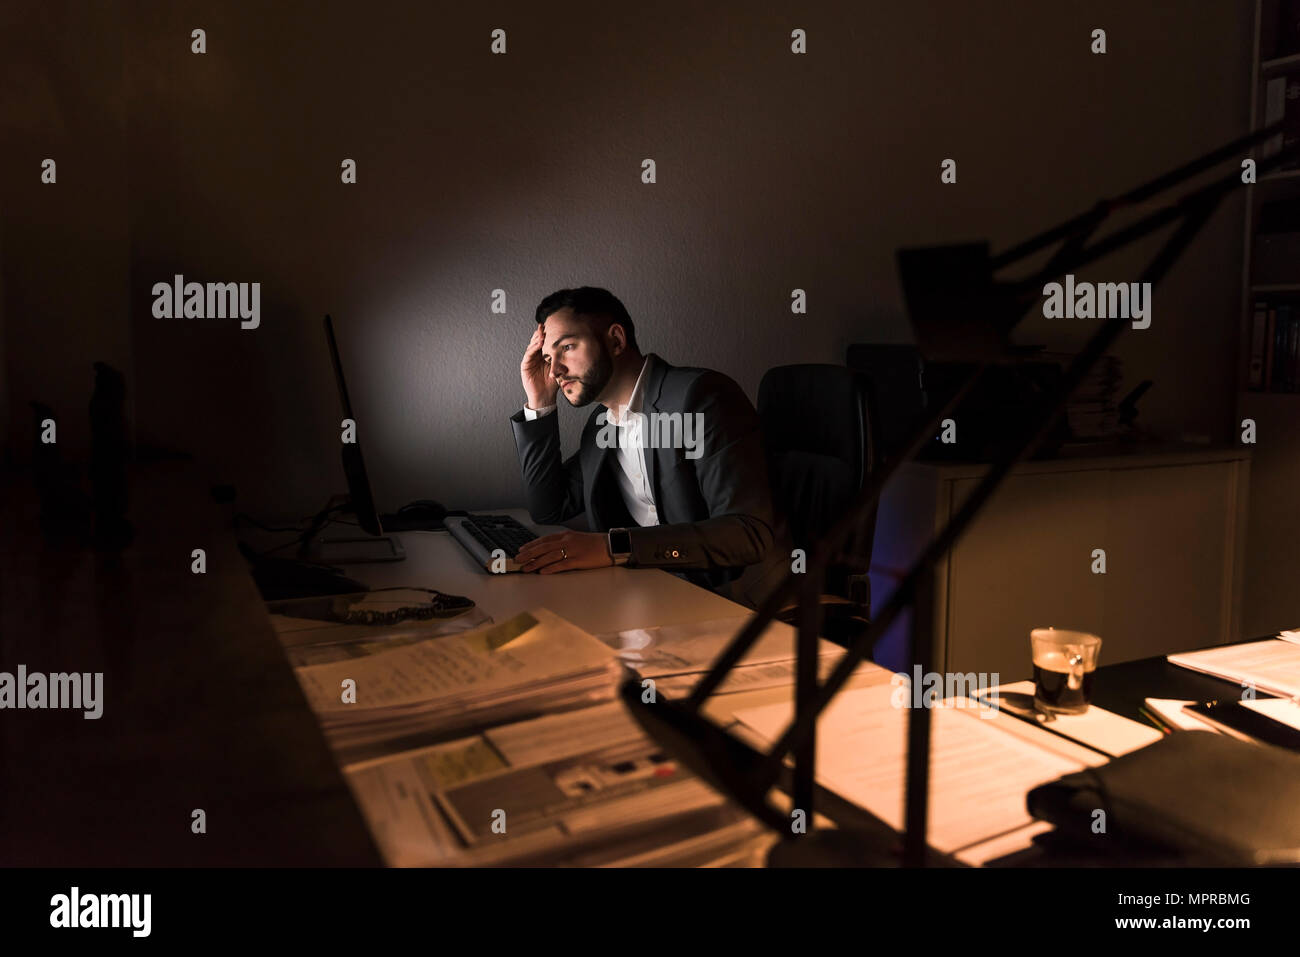 Pensive young businessman sitting at desk in office at night - Stock Image